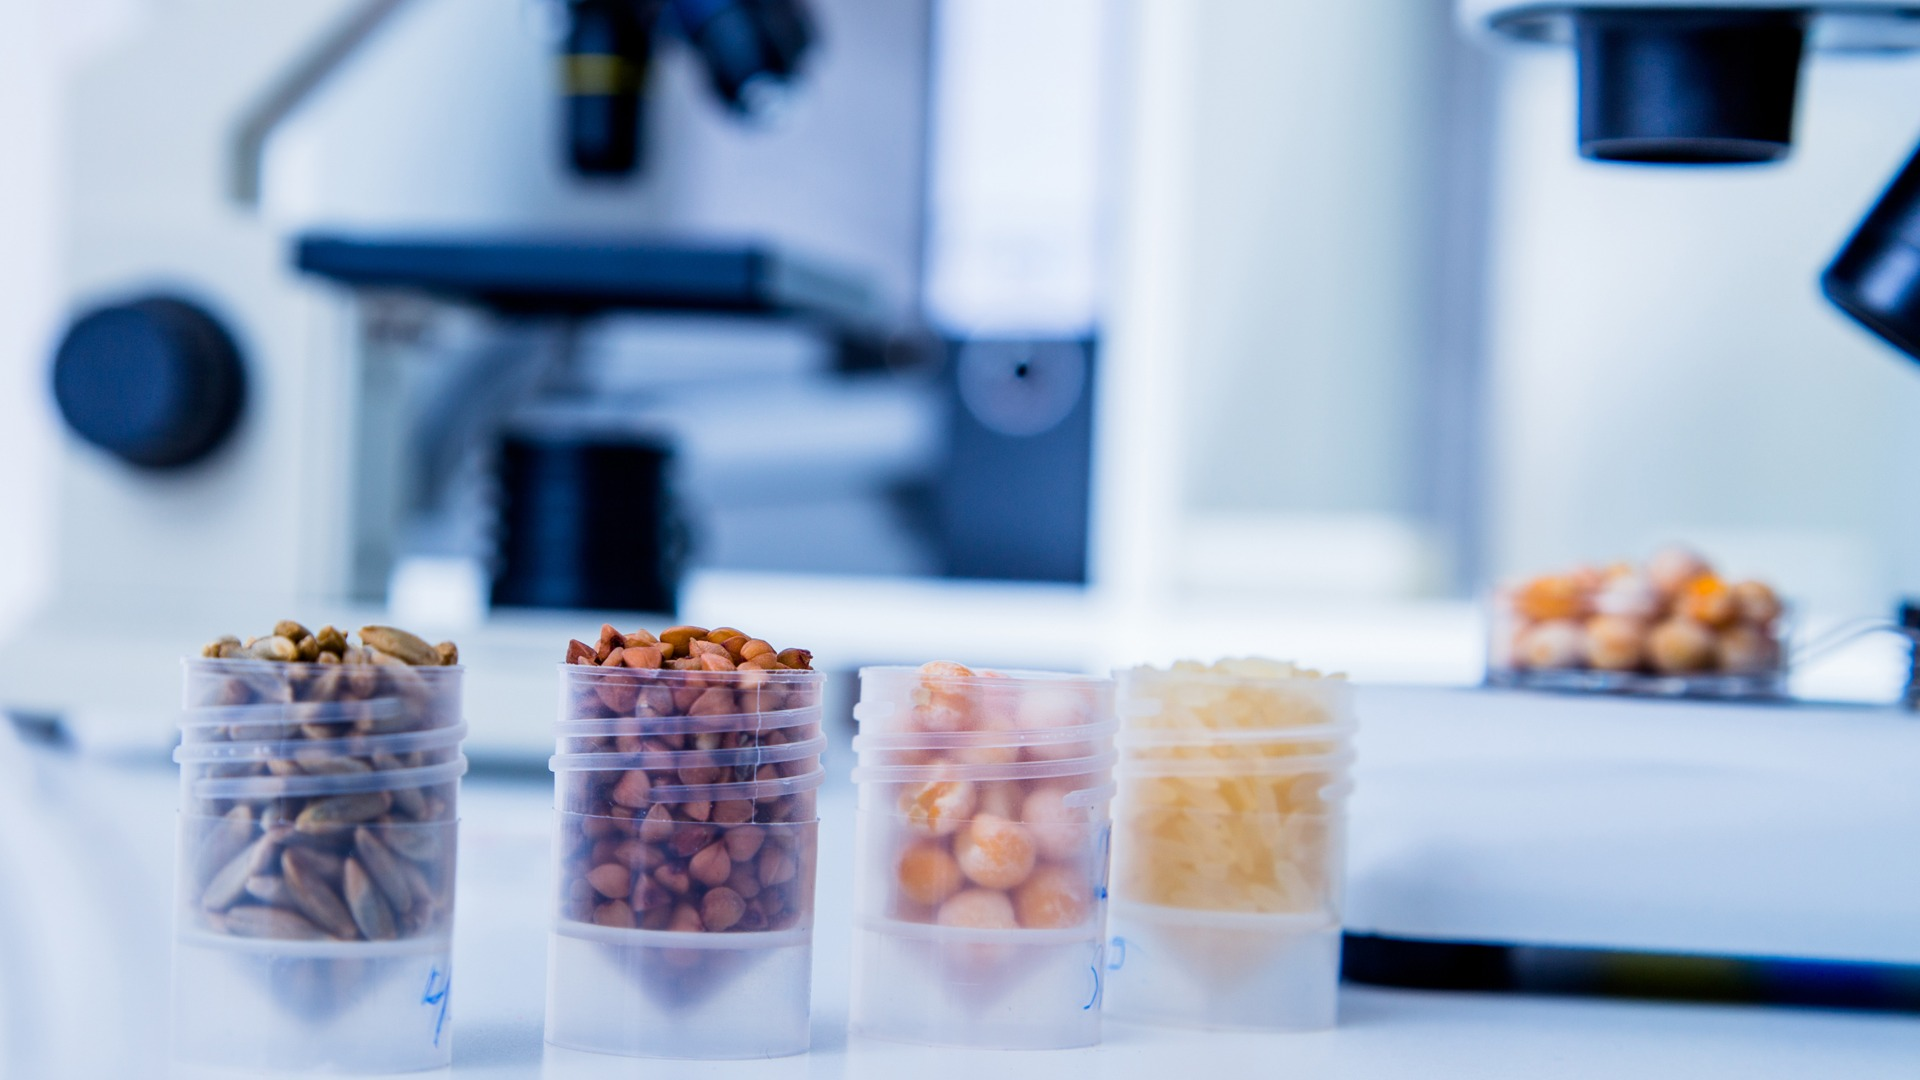 How future tools can predict toxicity in food and protect consumers